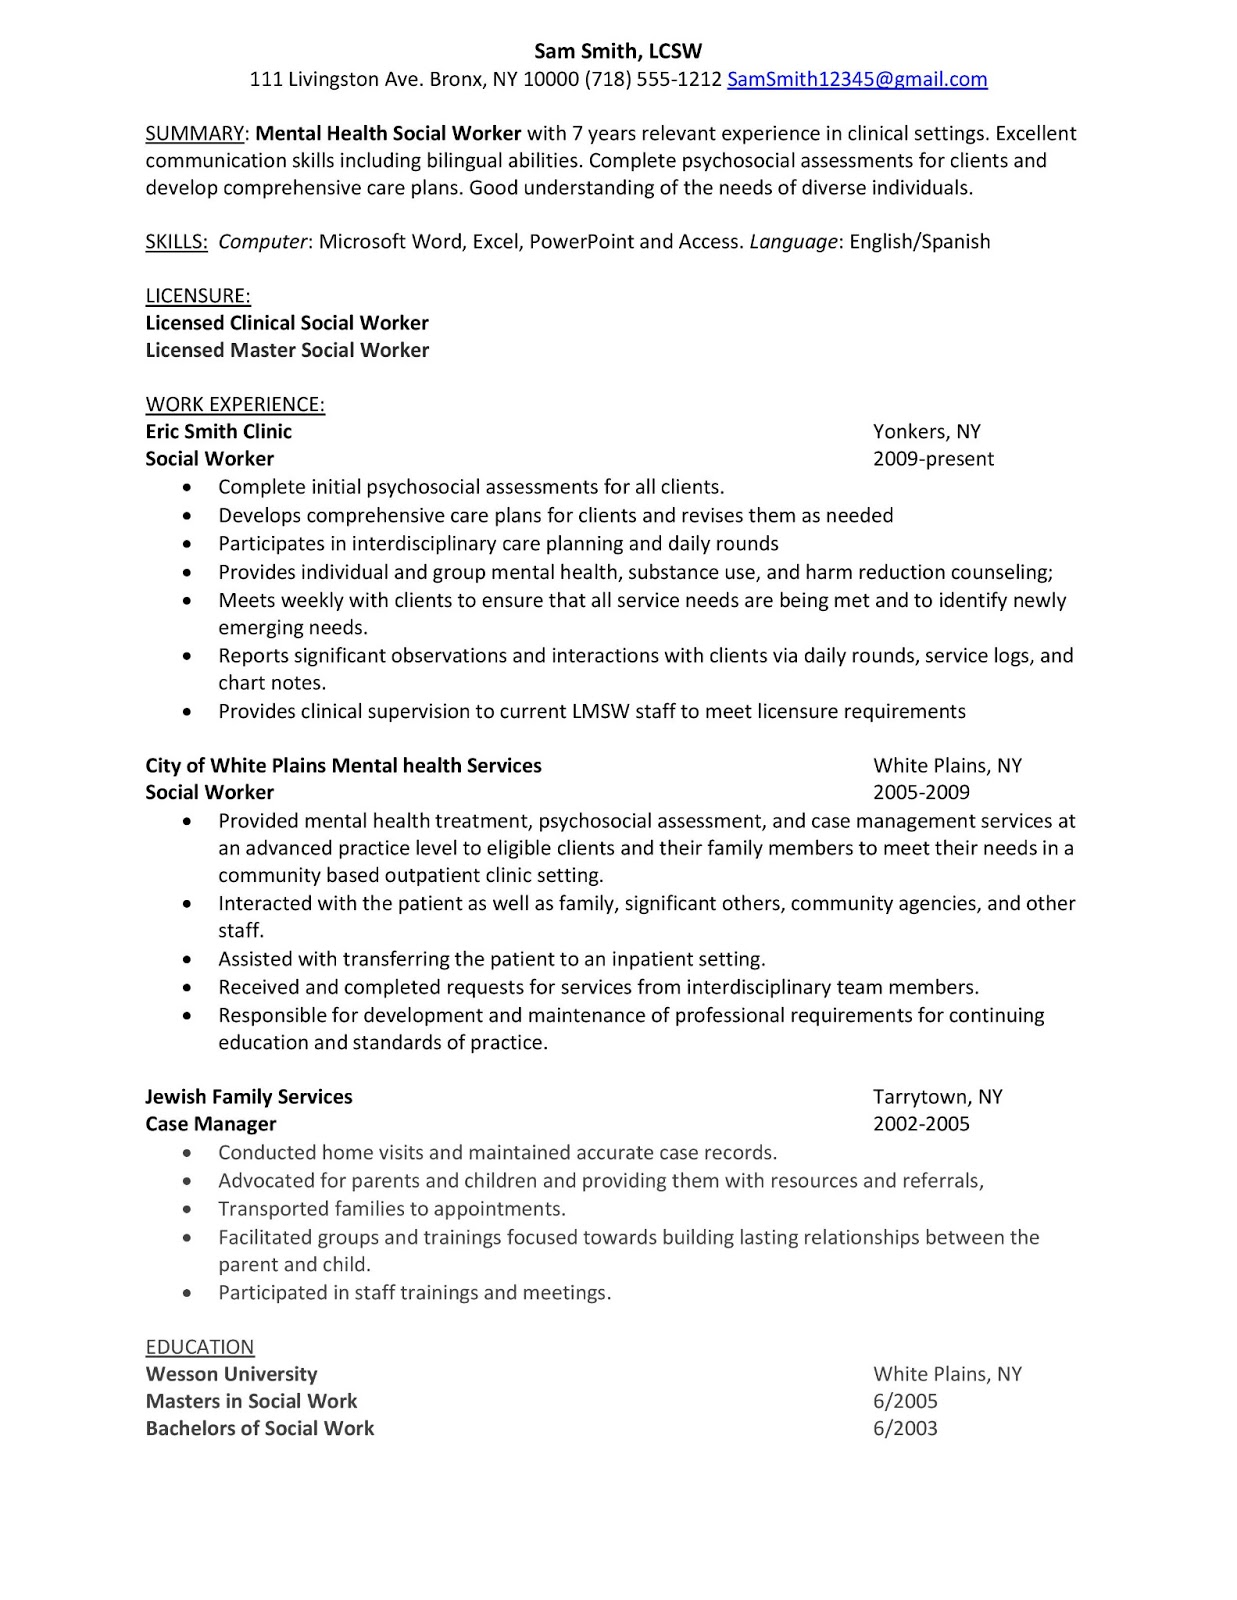 Sample resume: Mental Health Social Worker | Winning Answers to ...